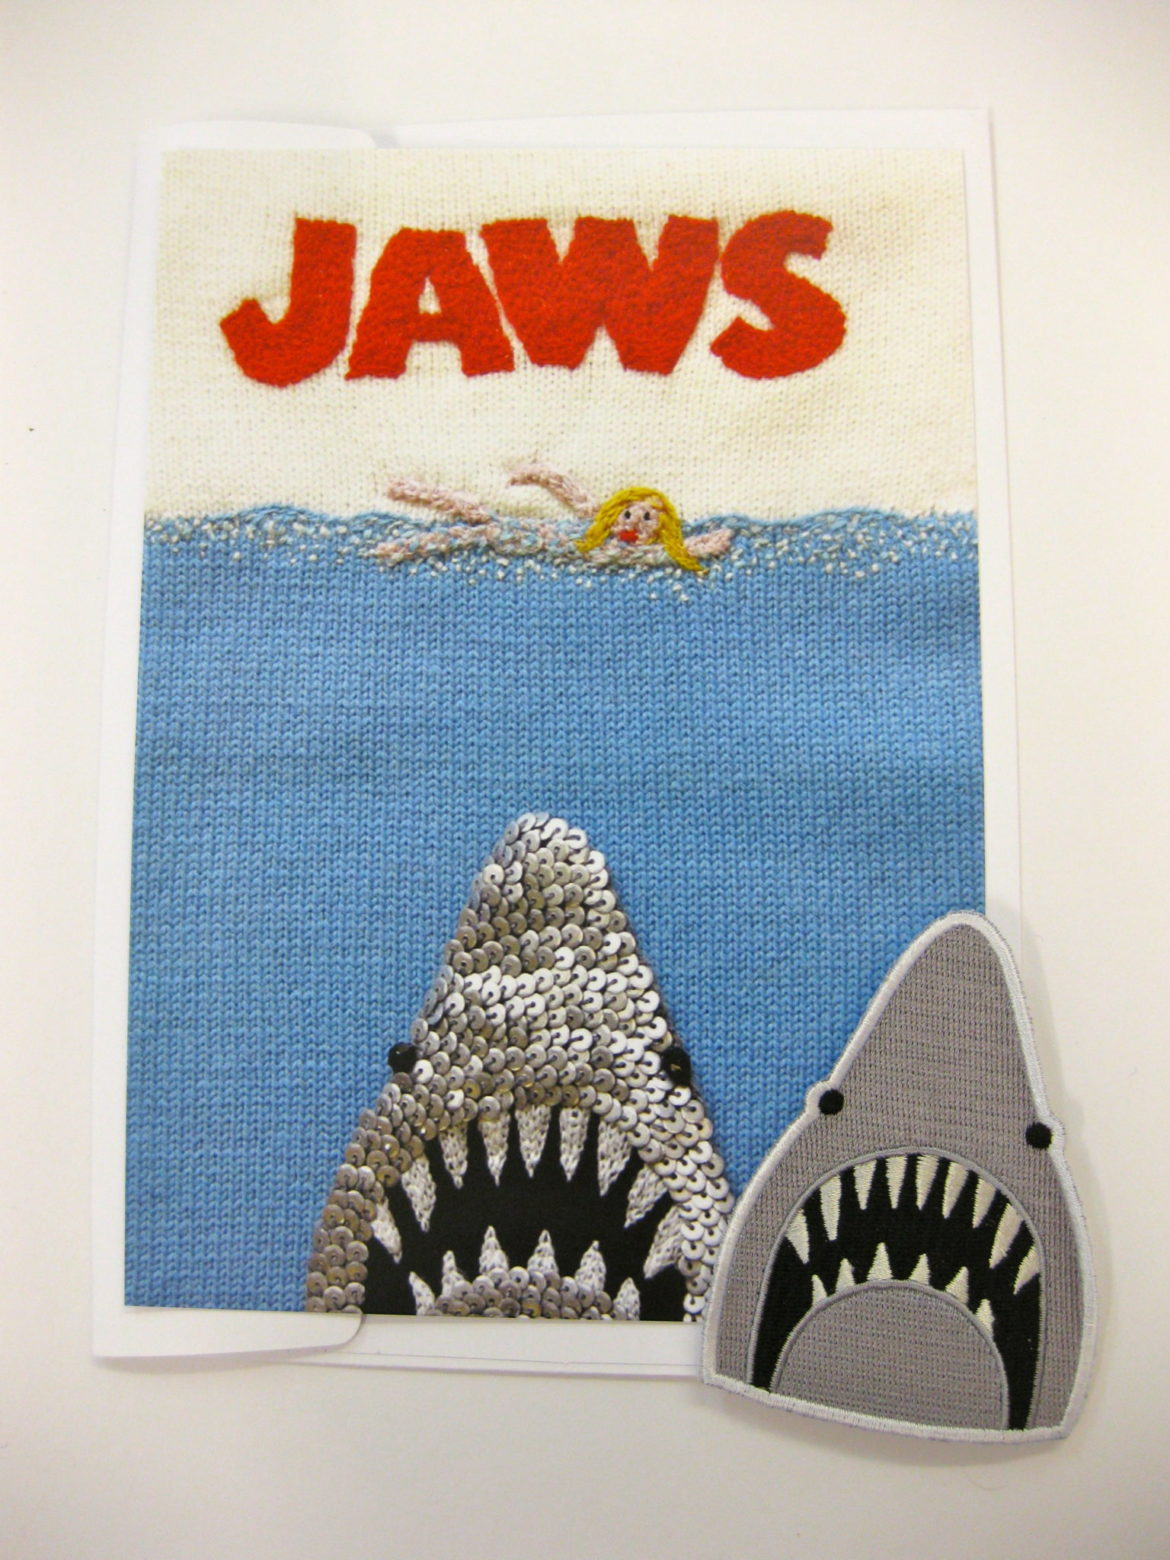 Jaws sew on patch